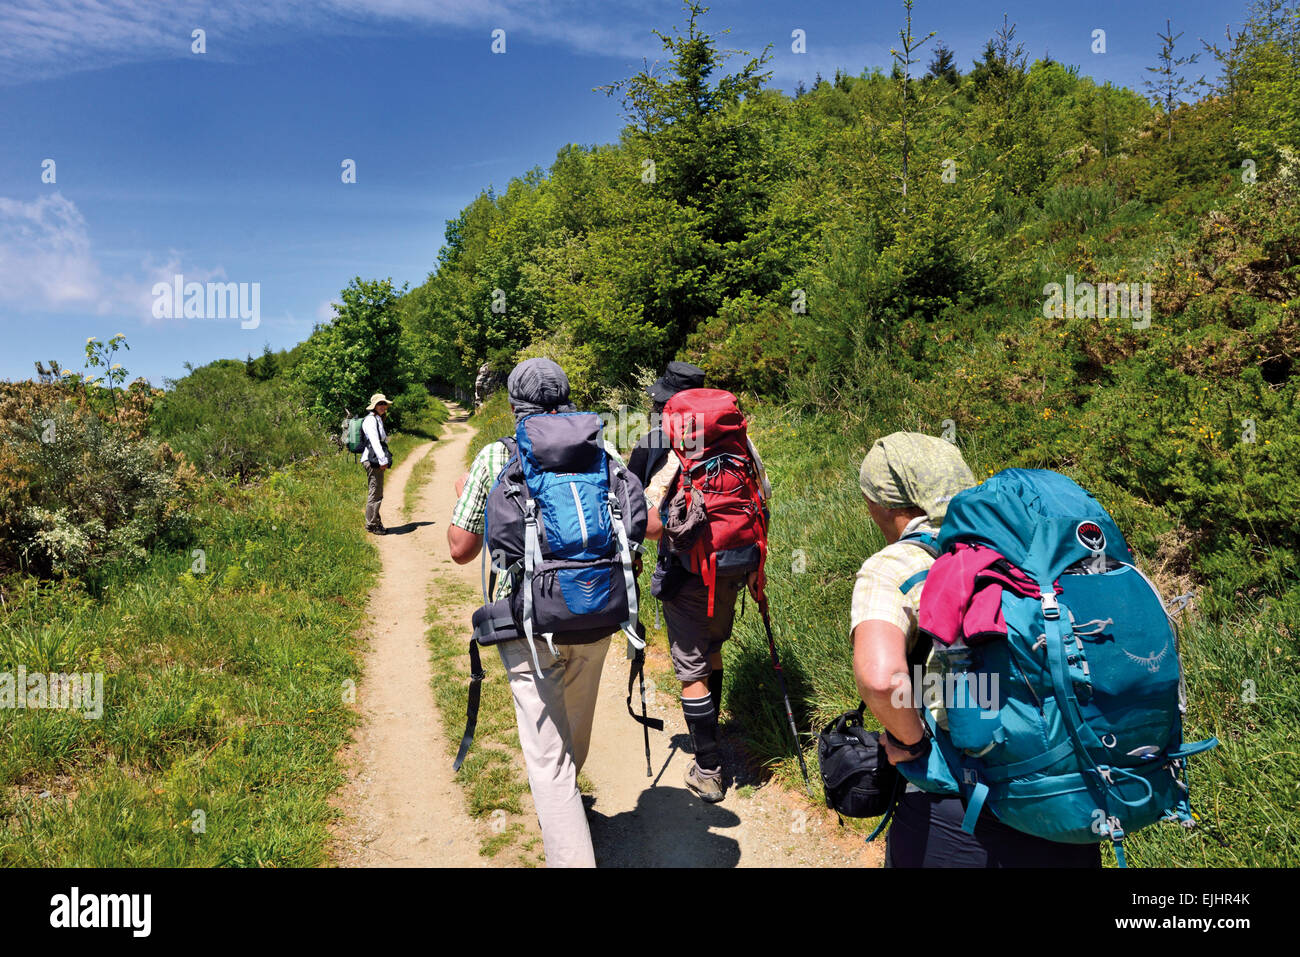 Spain, Galicia: Group of pilgrims walking the last kilometers before mountain village O Cebreiro - Stock Image